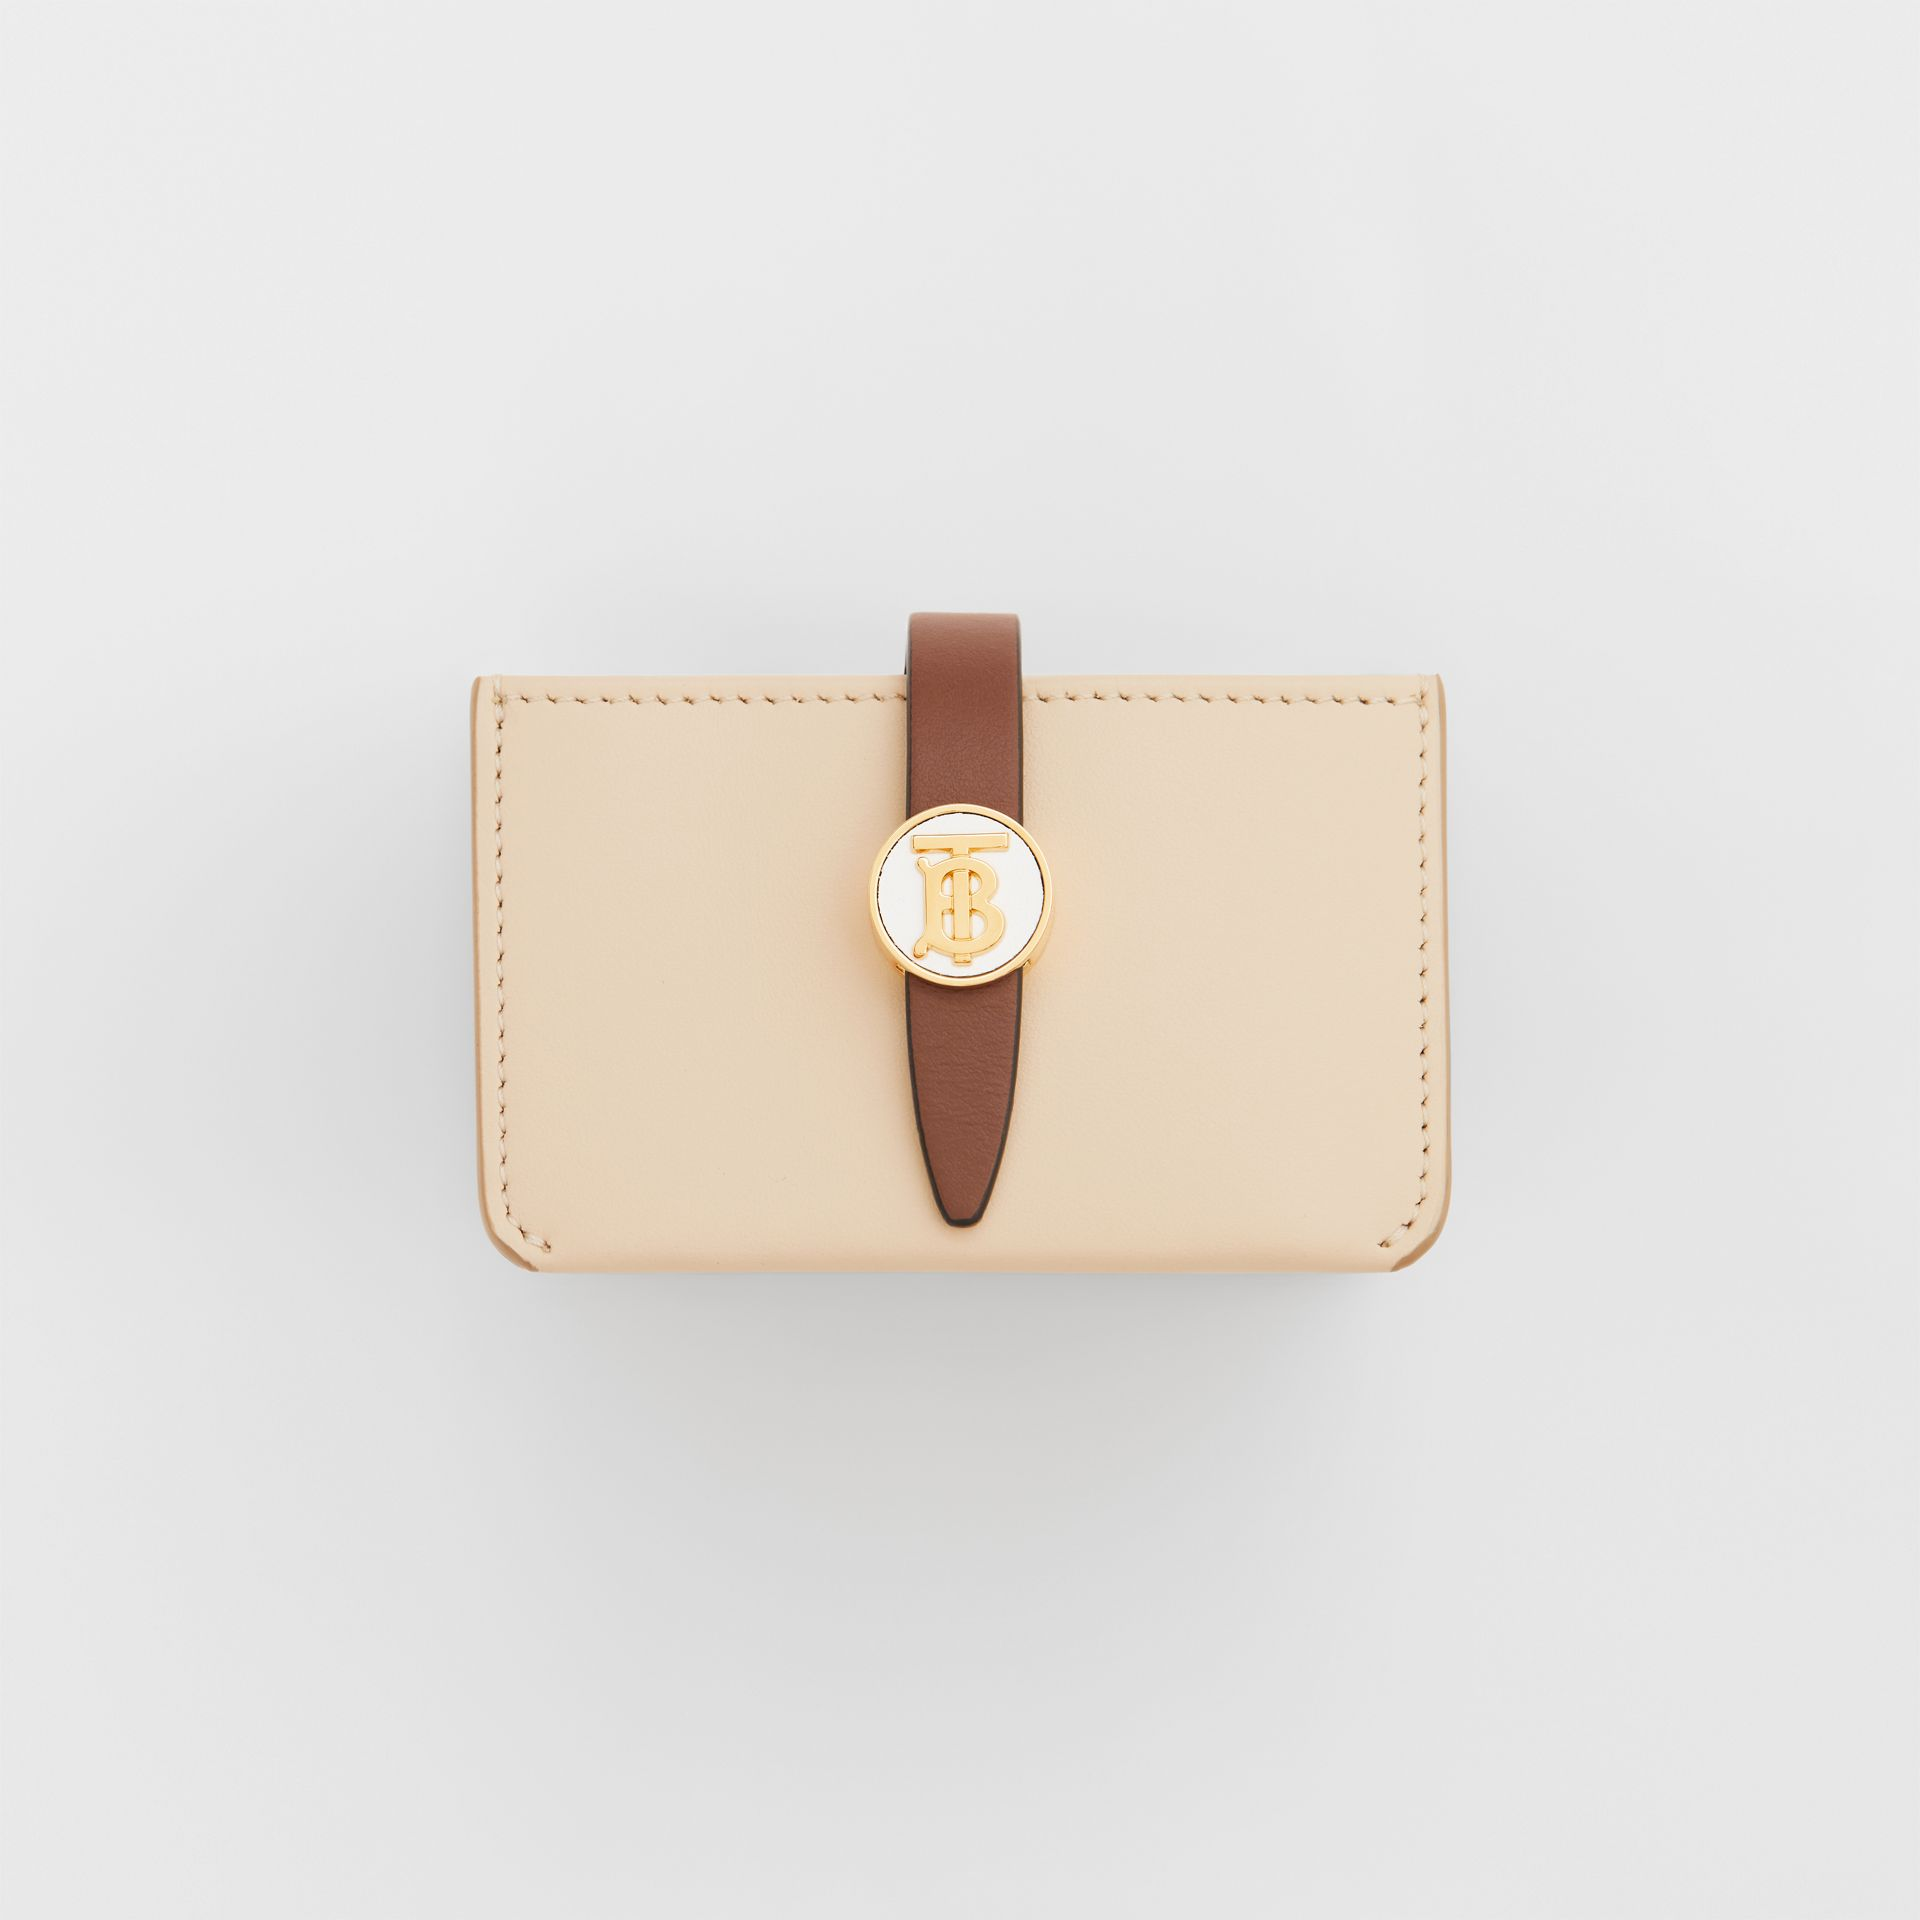 Monogram Motif Colour Block Leather Card Case in Tan/pale Copper/peony Pink - Women | Burberry - gallery image 2